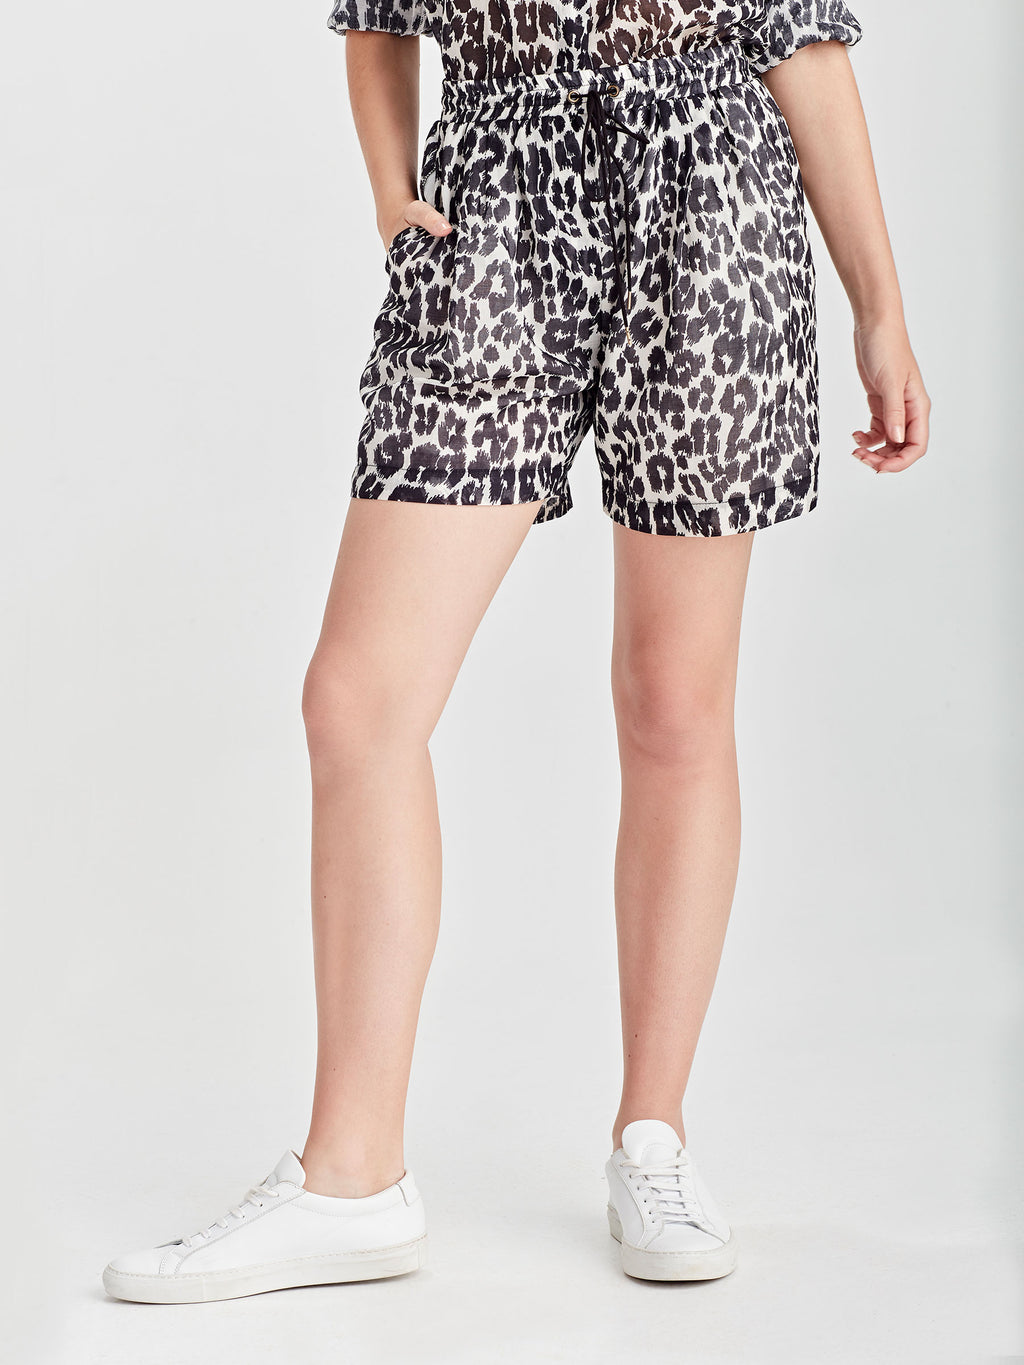 Devon Short (Leopard Voile) Scribble